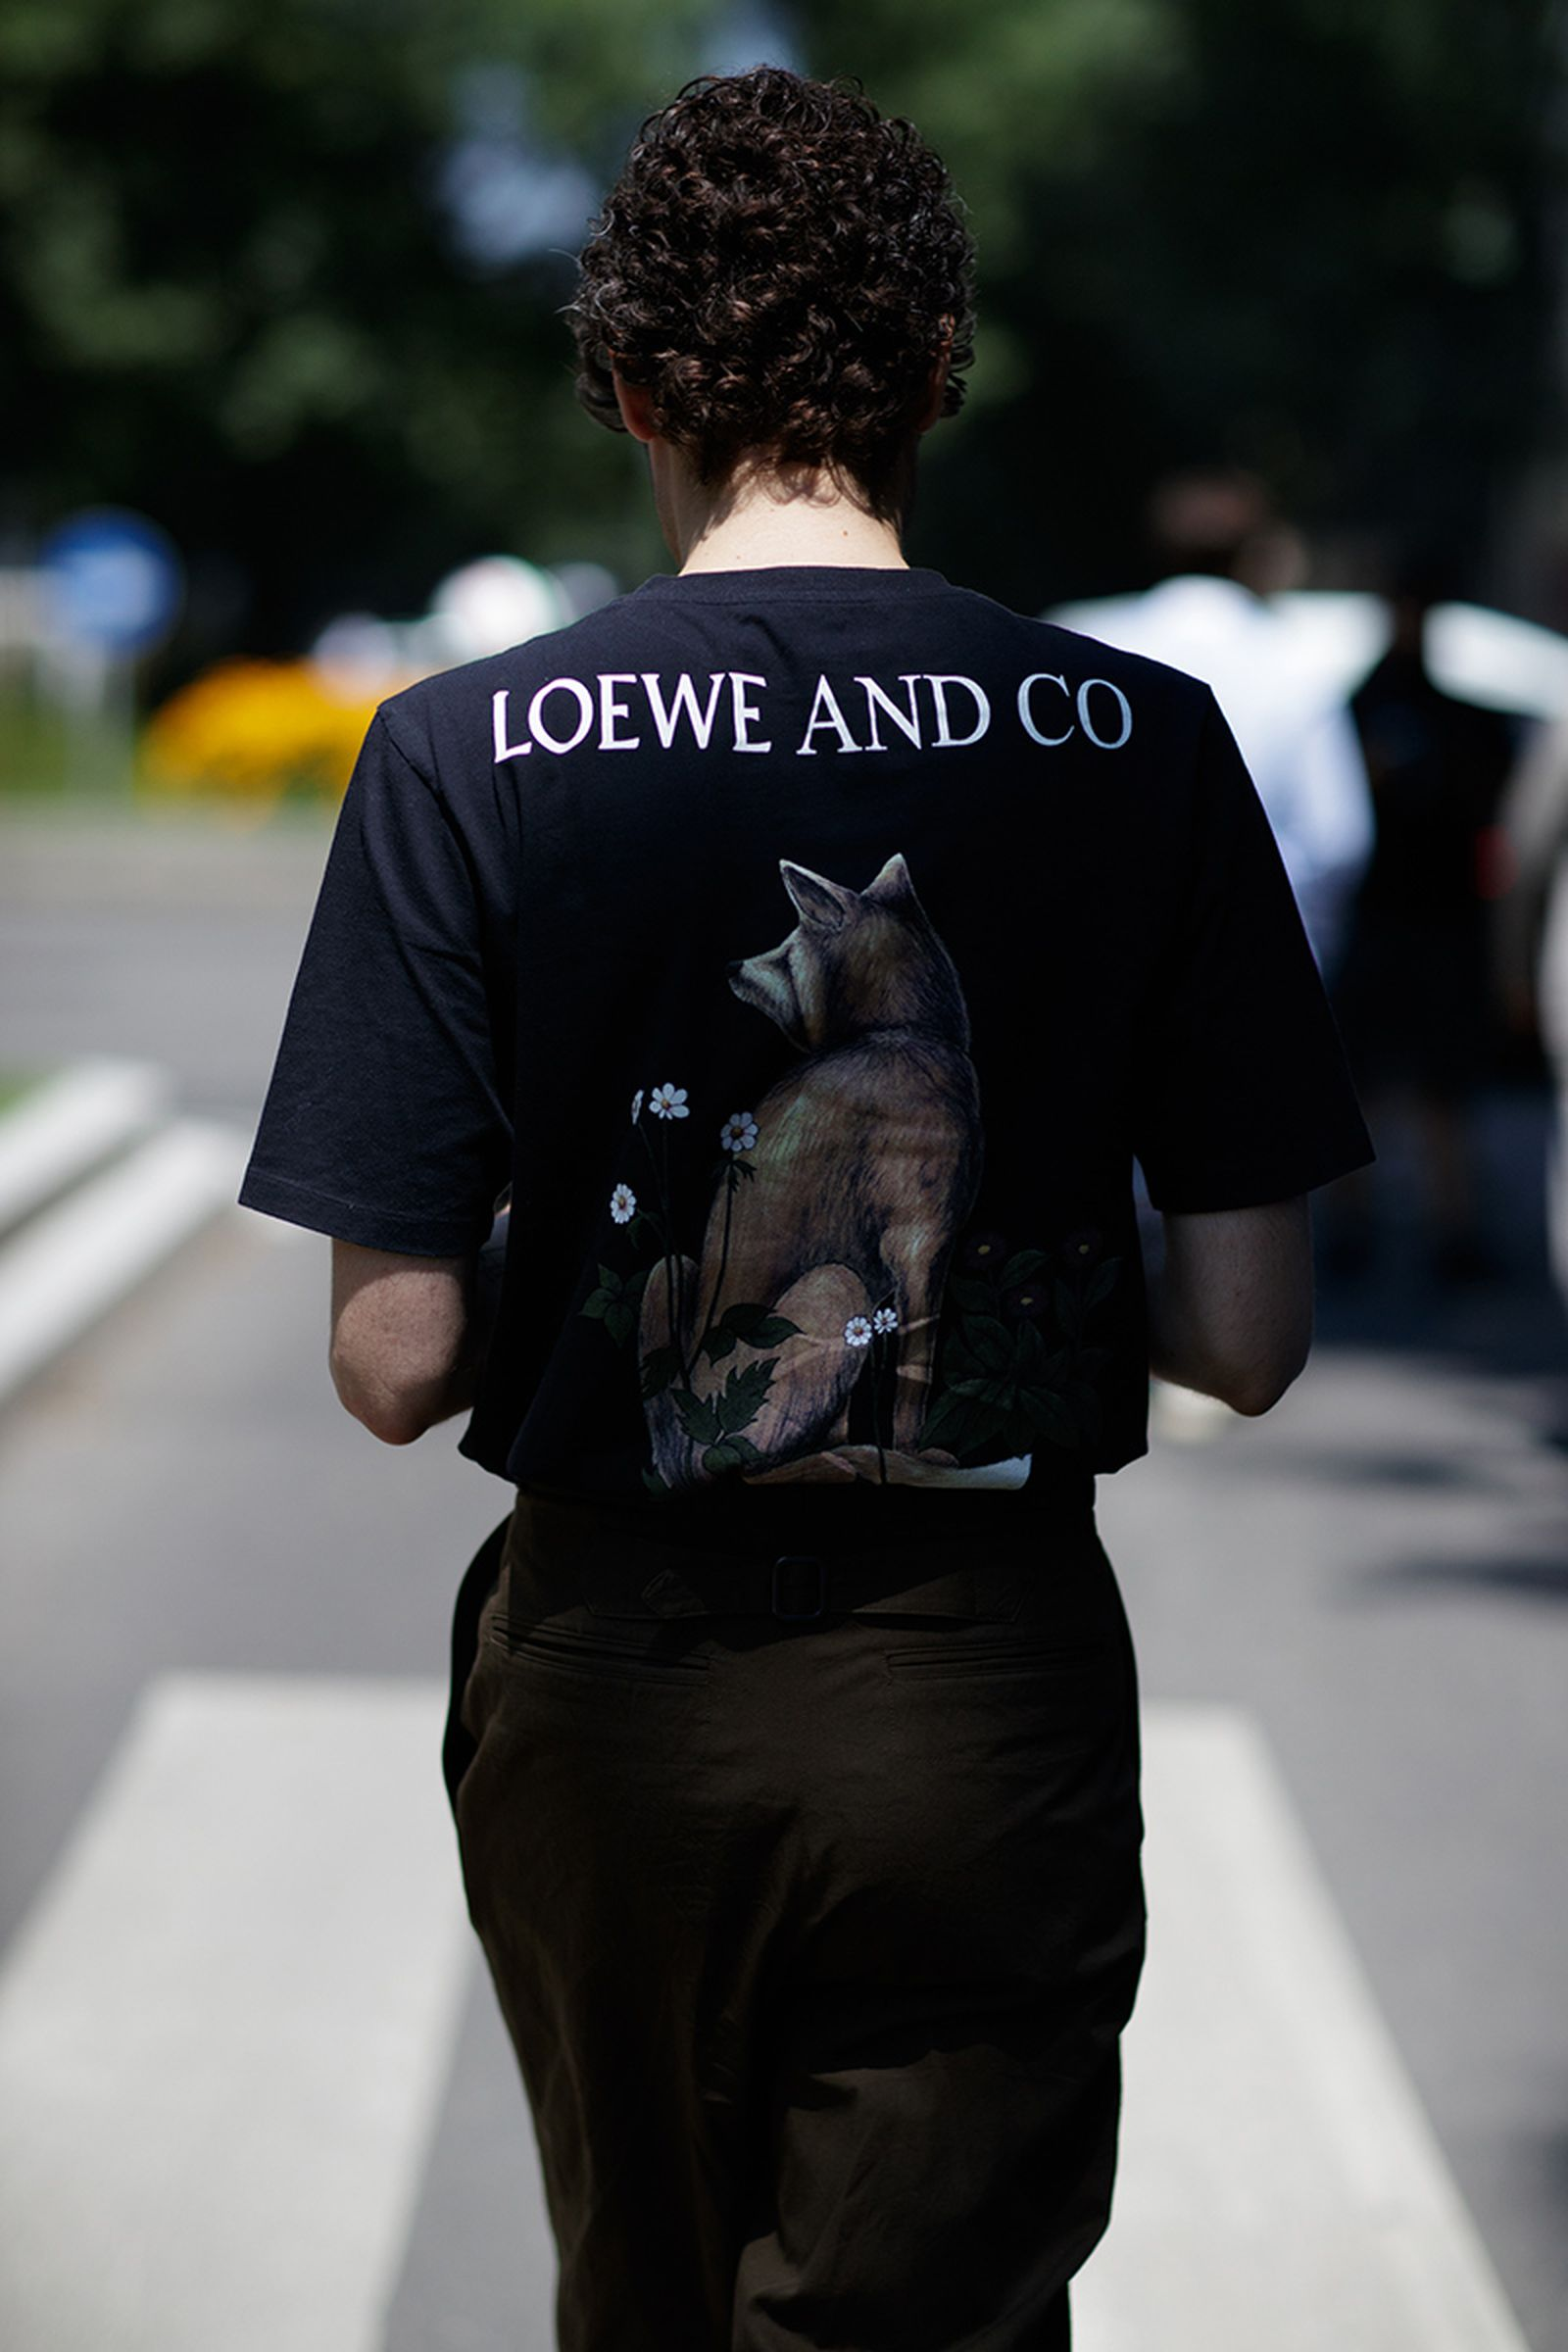 jonathan anderson injected cool loewe asap rocky jw anderson pusha t